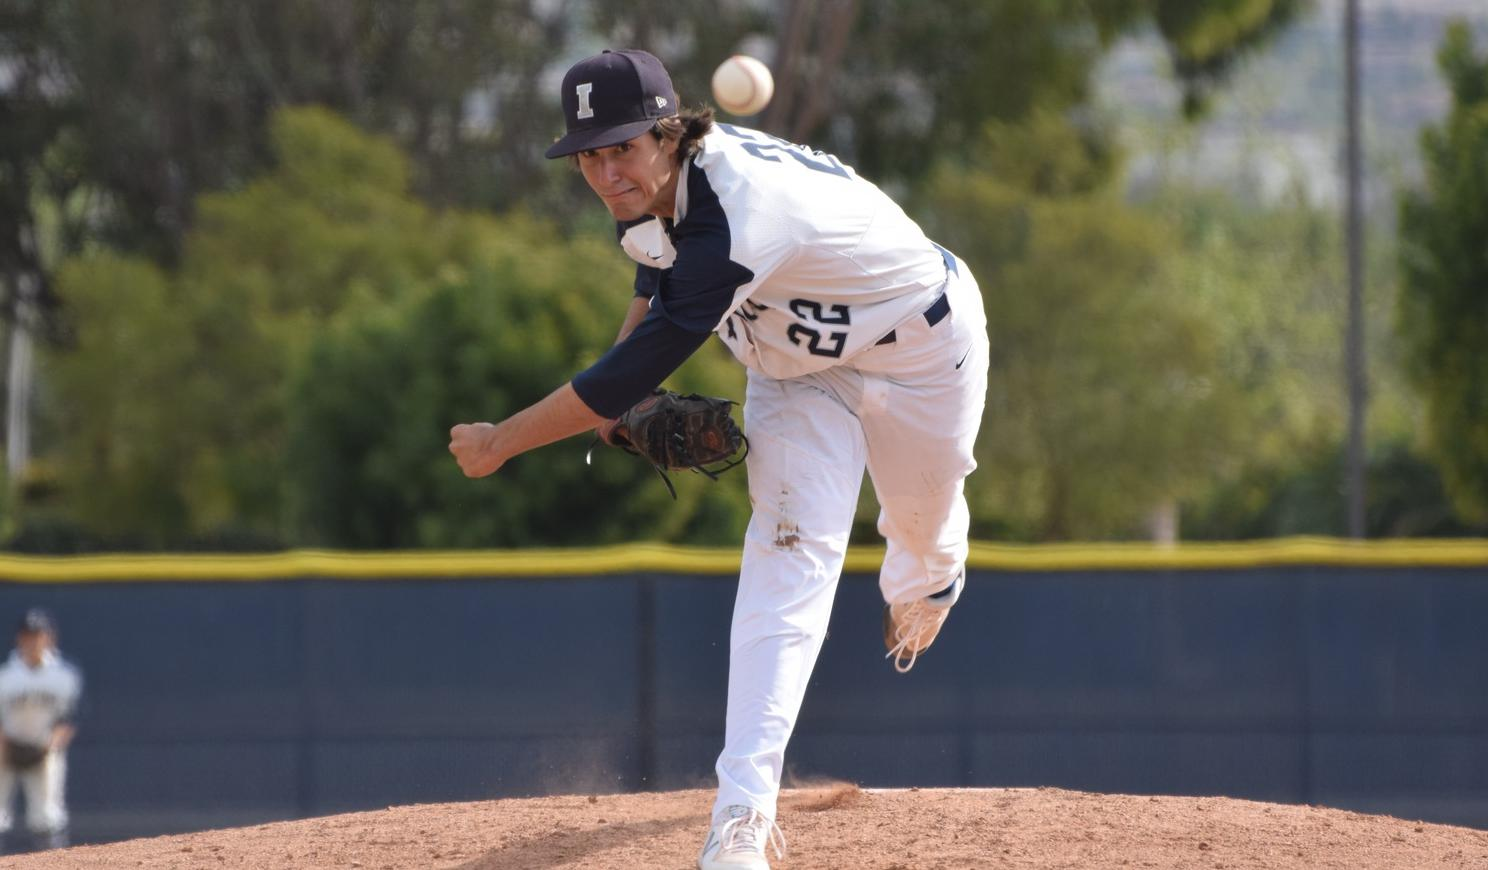 Baseball team turns it on to defeat West LA, 9-2